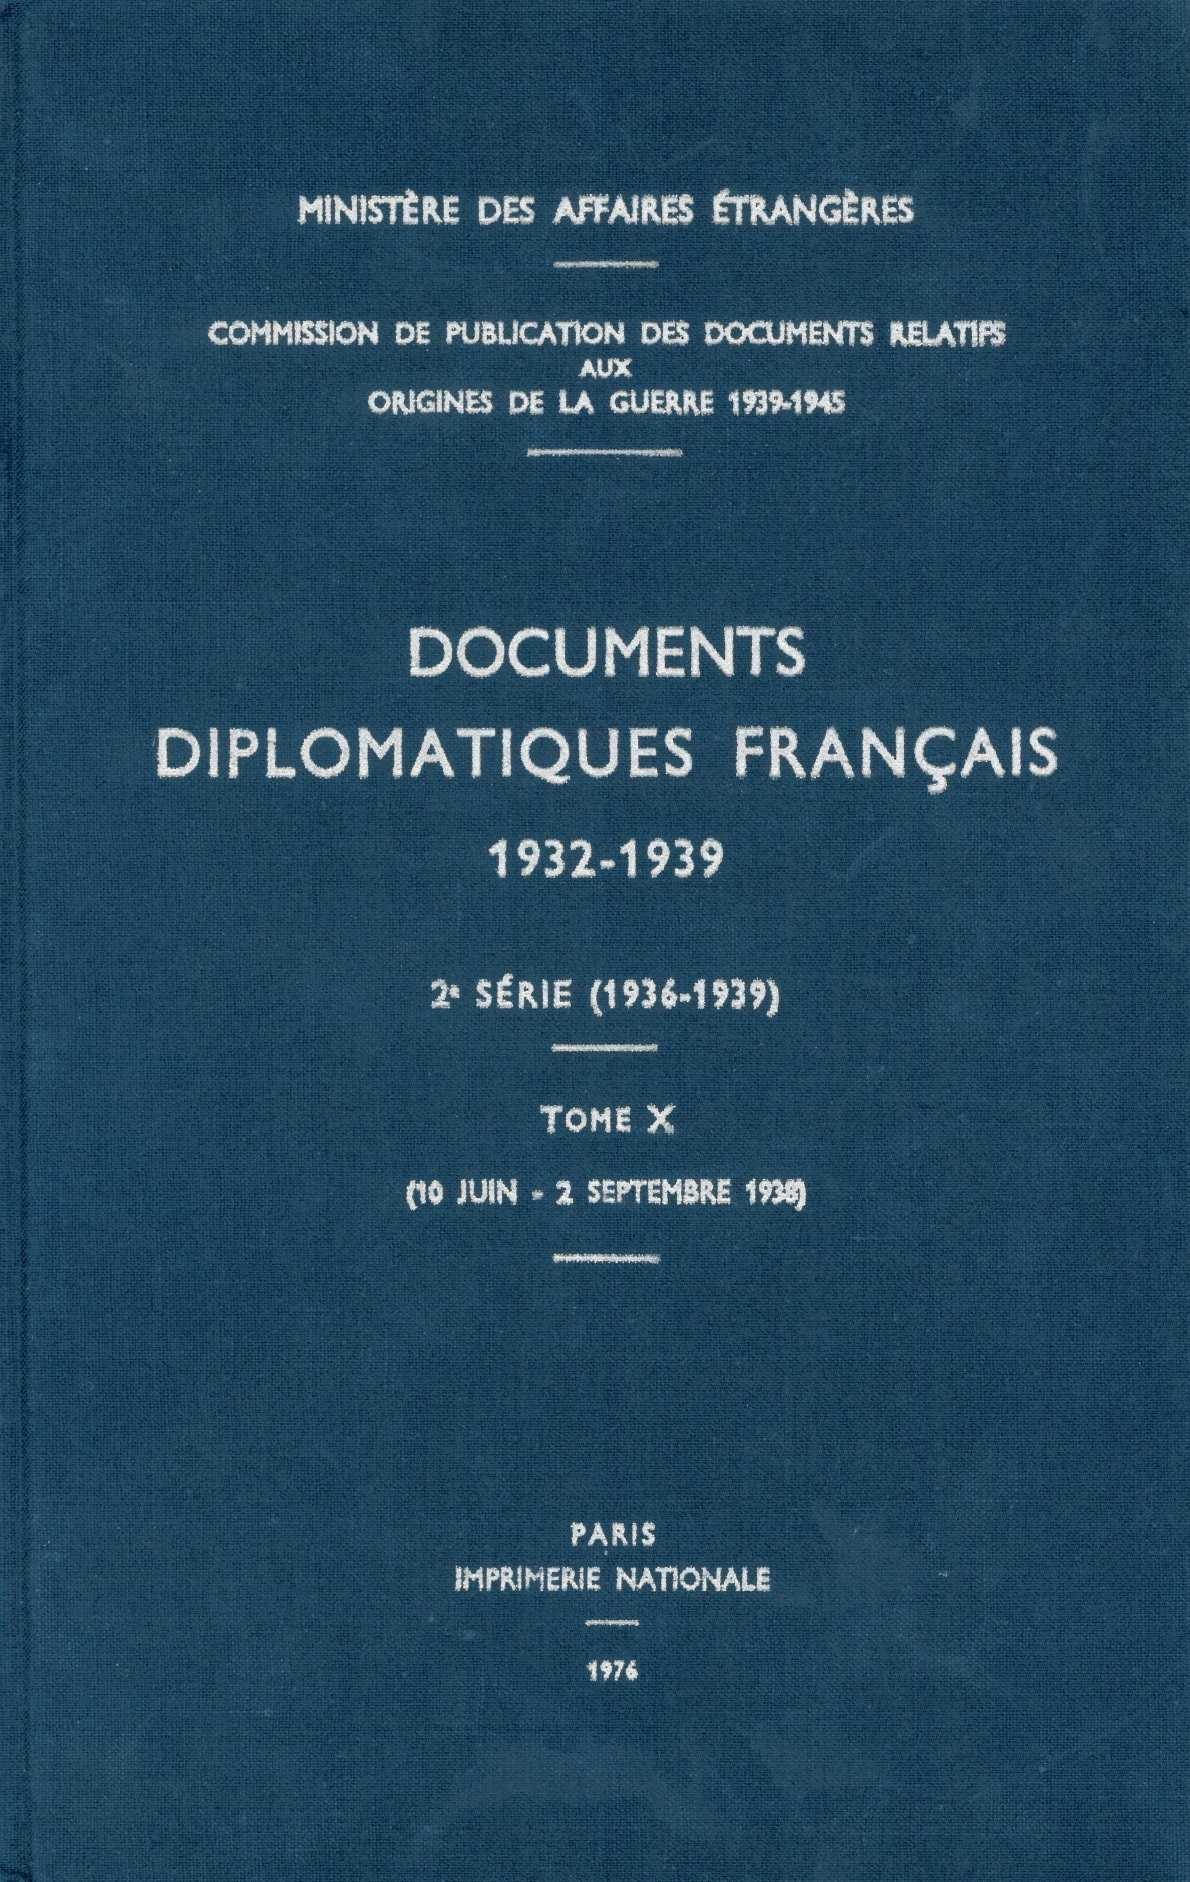 DOCUMENTS DIPLOMATIQUES FRANCAIS 1938 TOME III